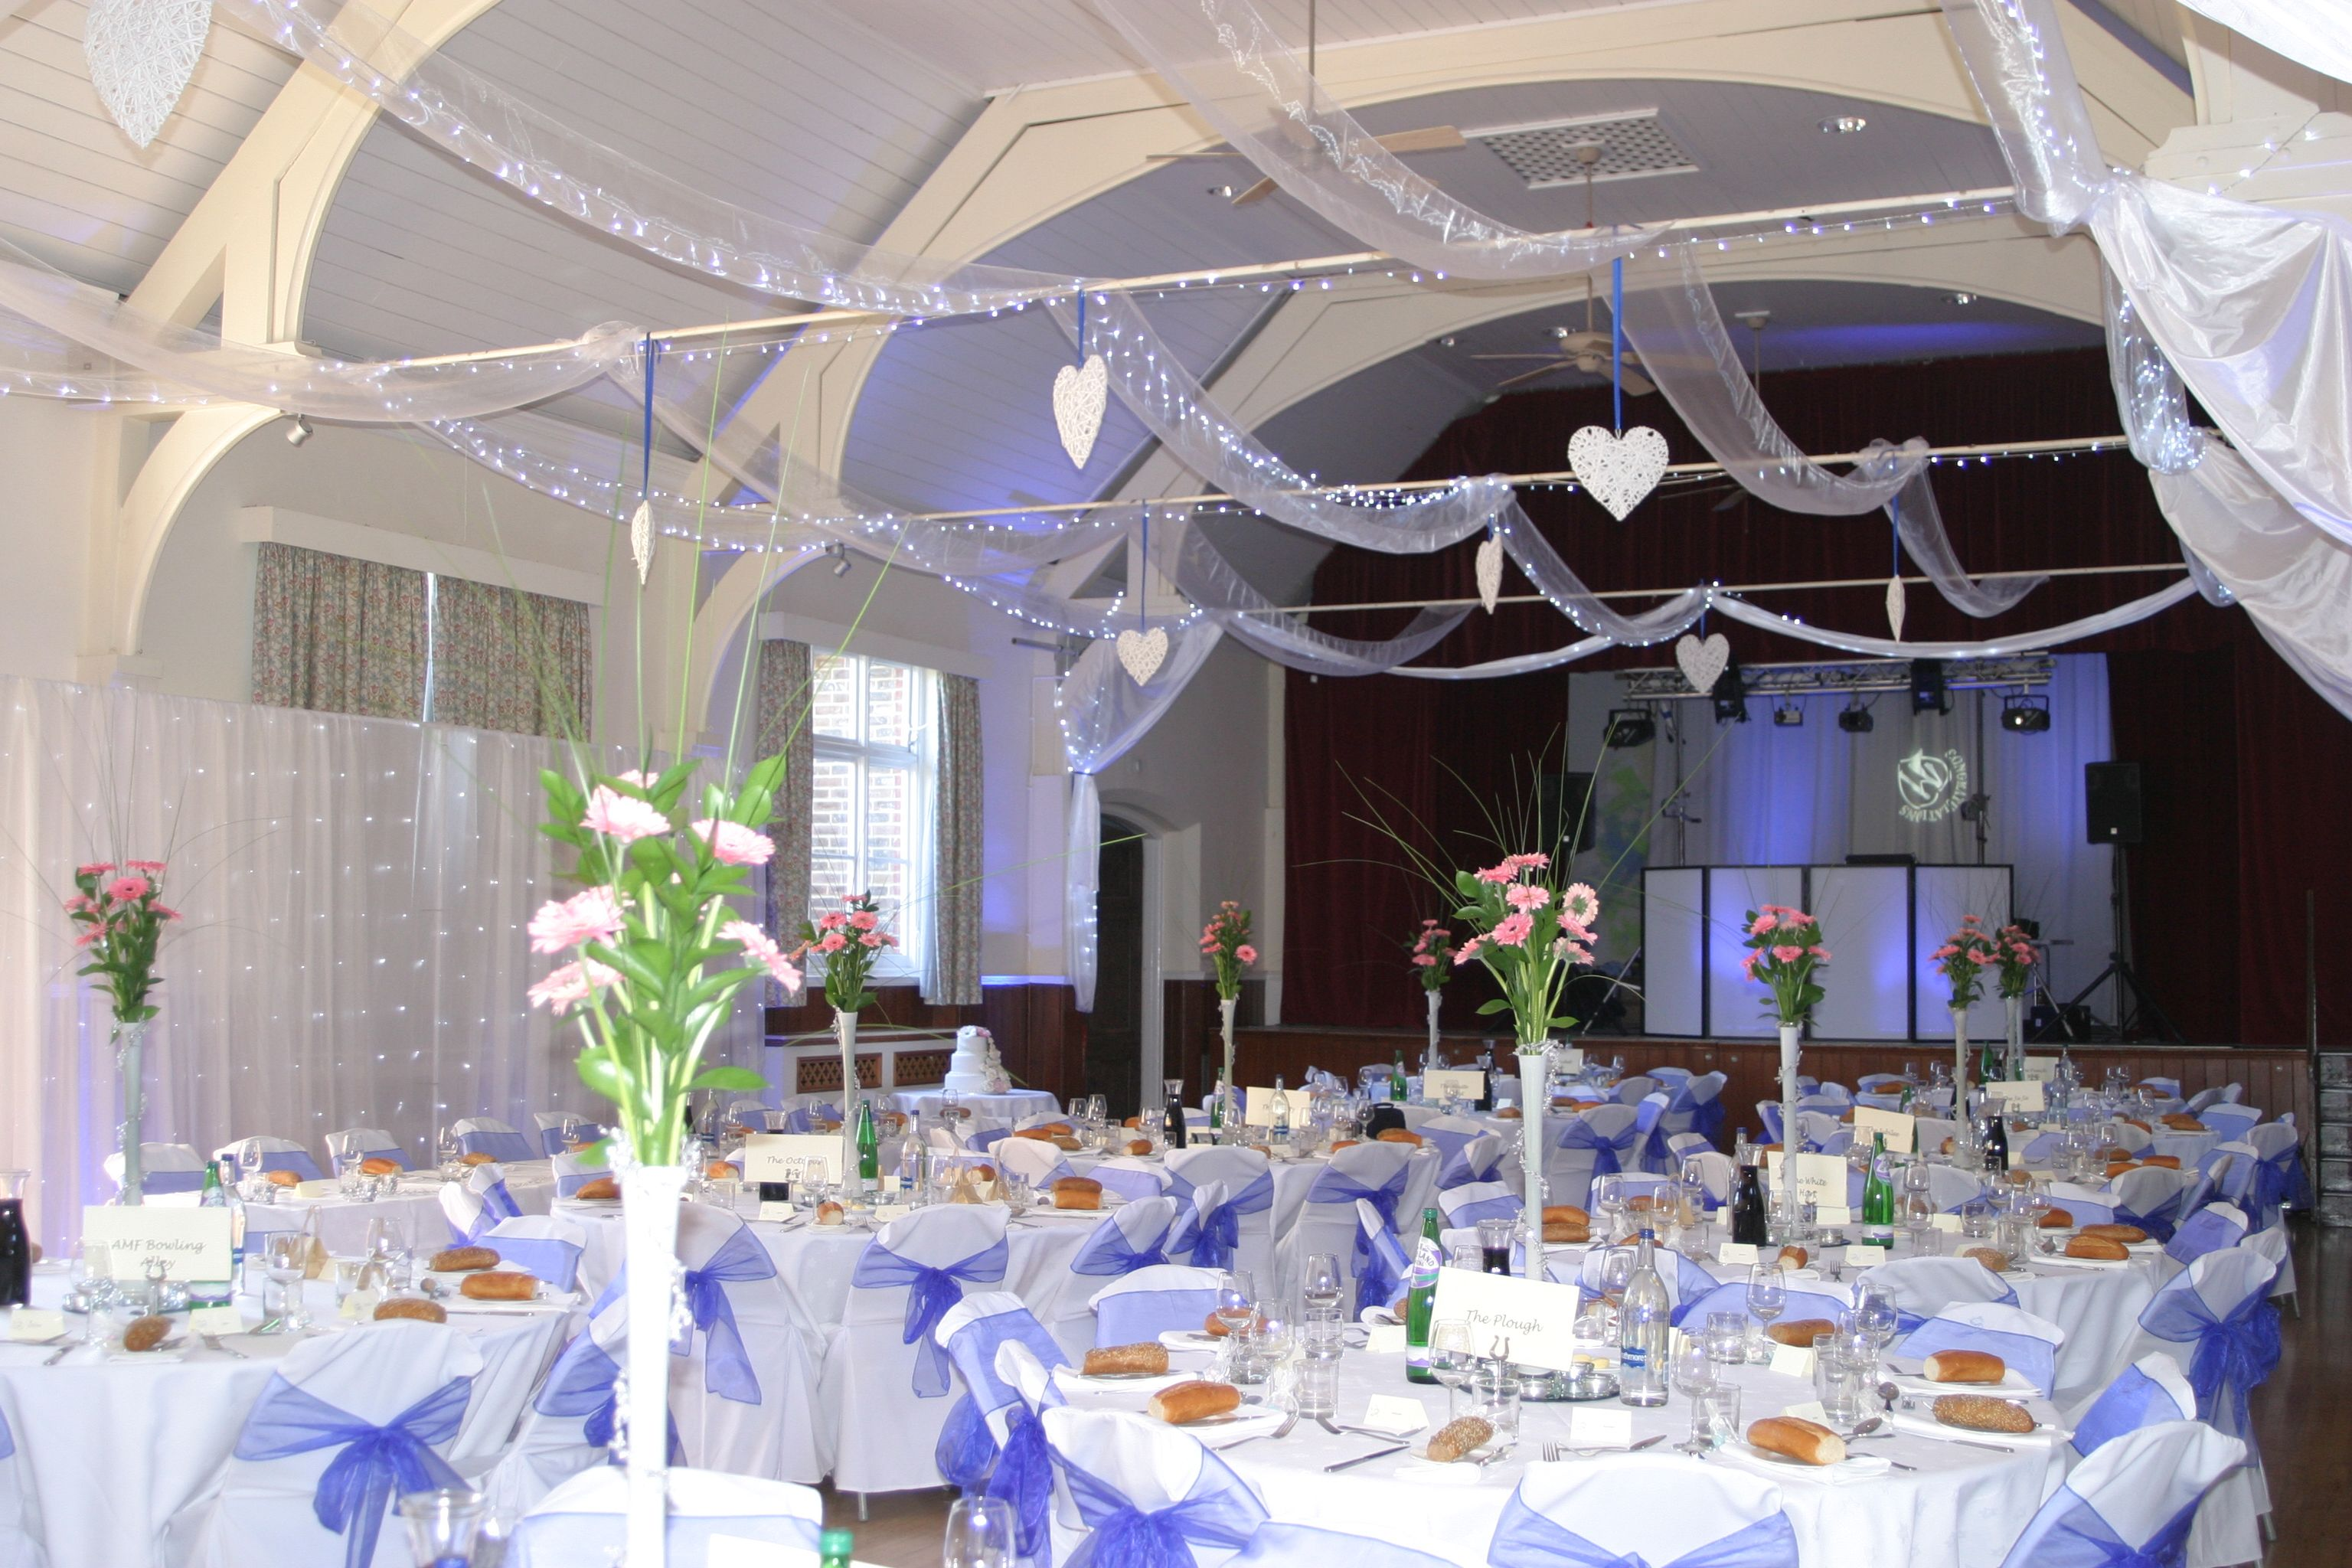 Queens Hall Cuckfield Hire Venue Stuff In 2018 Pinterest